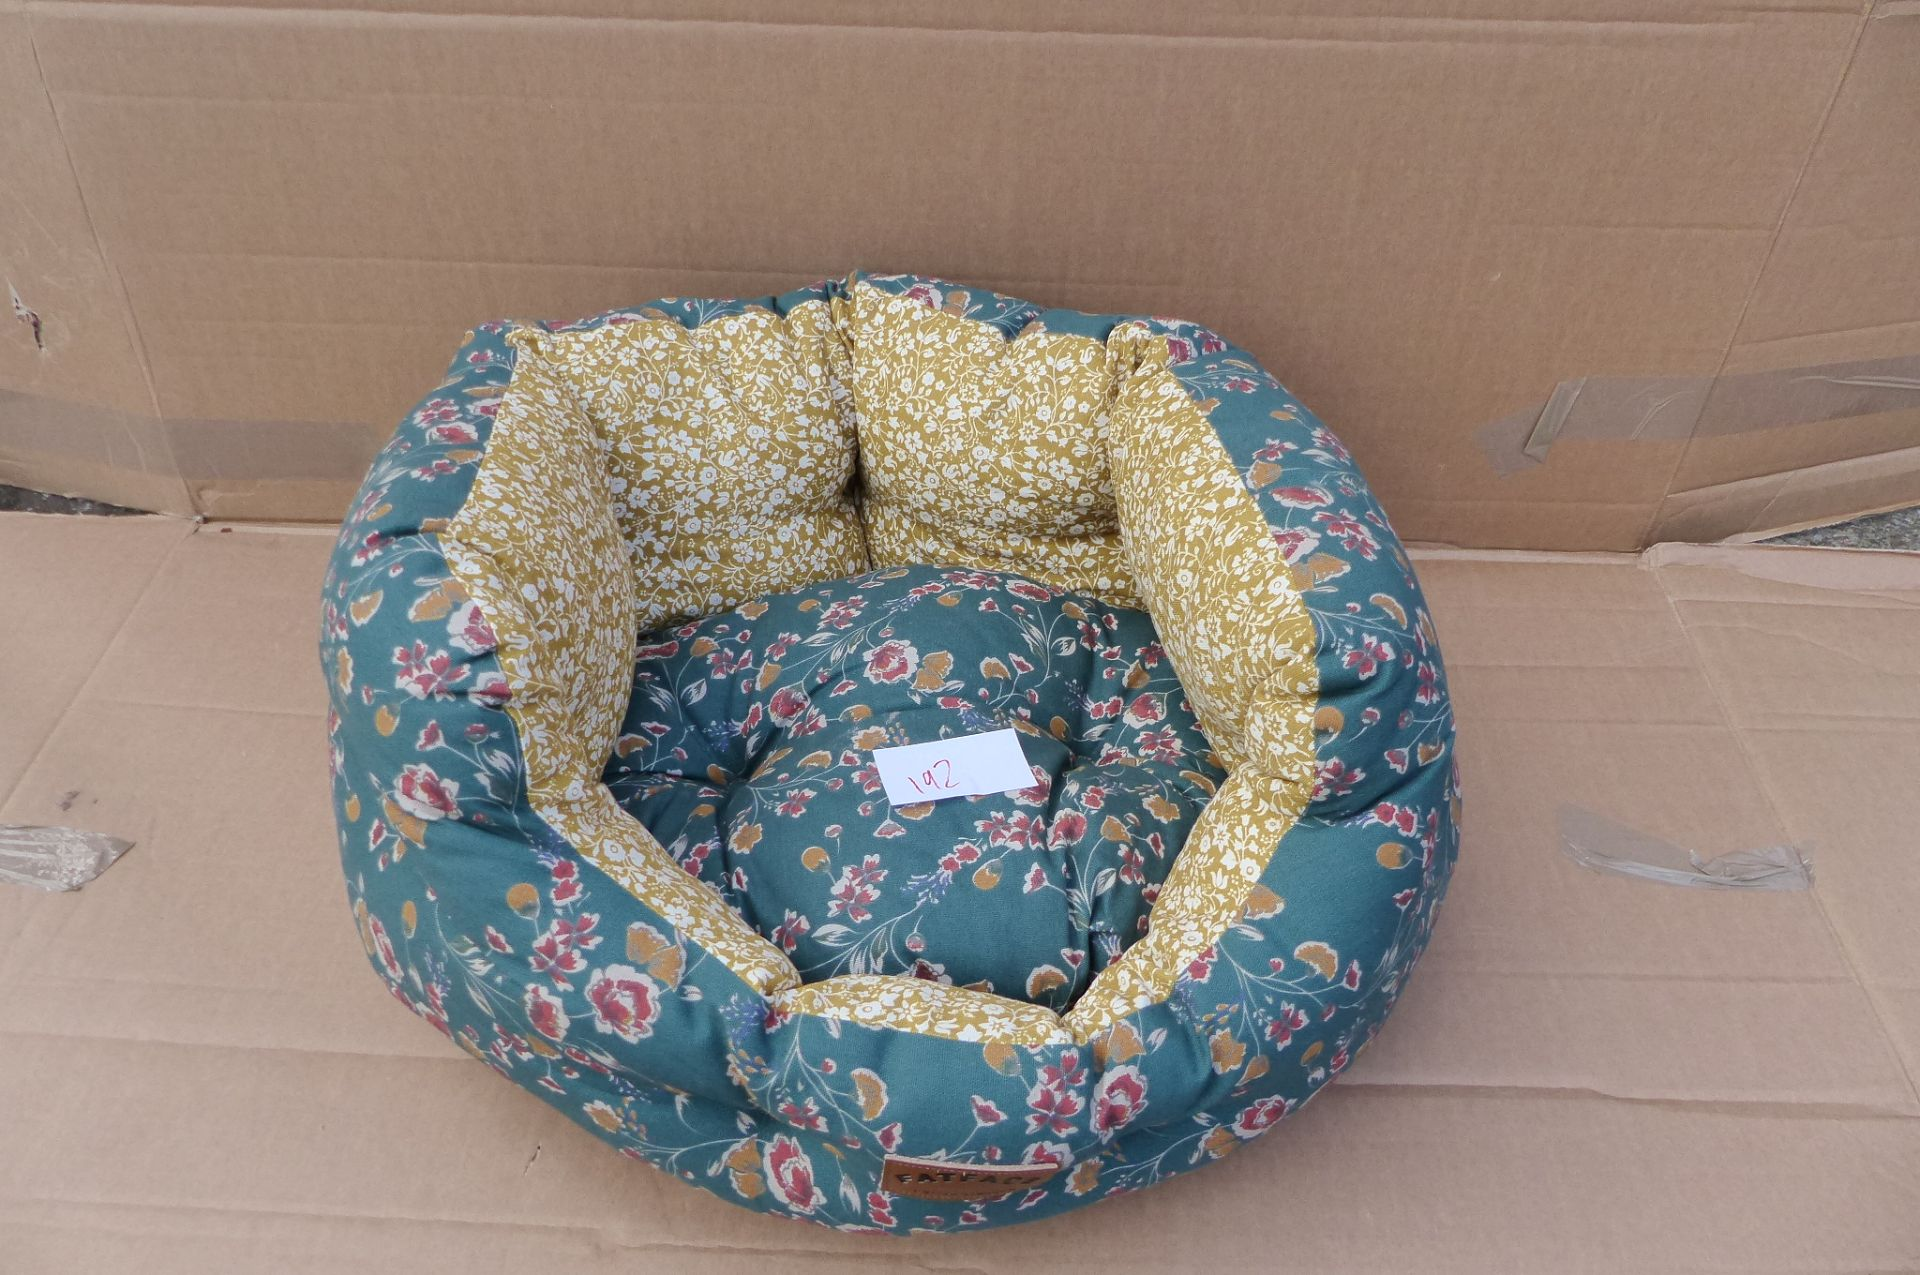 FatFace Dog bed 18 inches SKU192